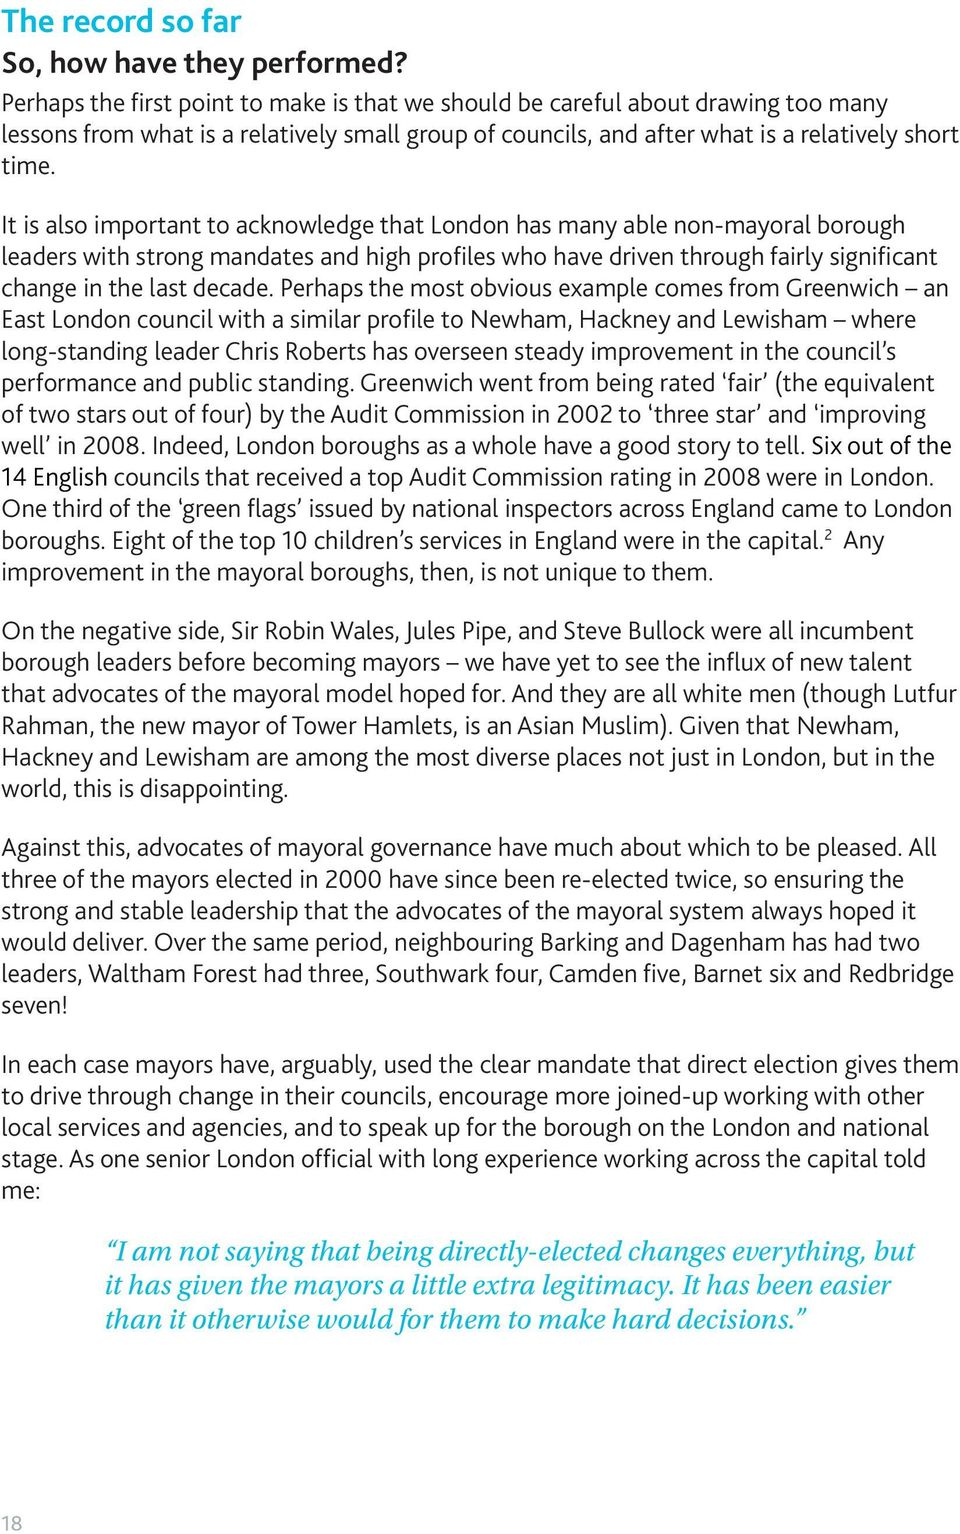 It is also important to acknowledge that London has many able non-mayoral borough leaders with strong mandates and high profiles who have driven through fairly significant change in the last decade.